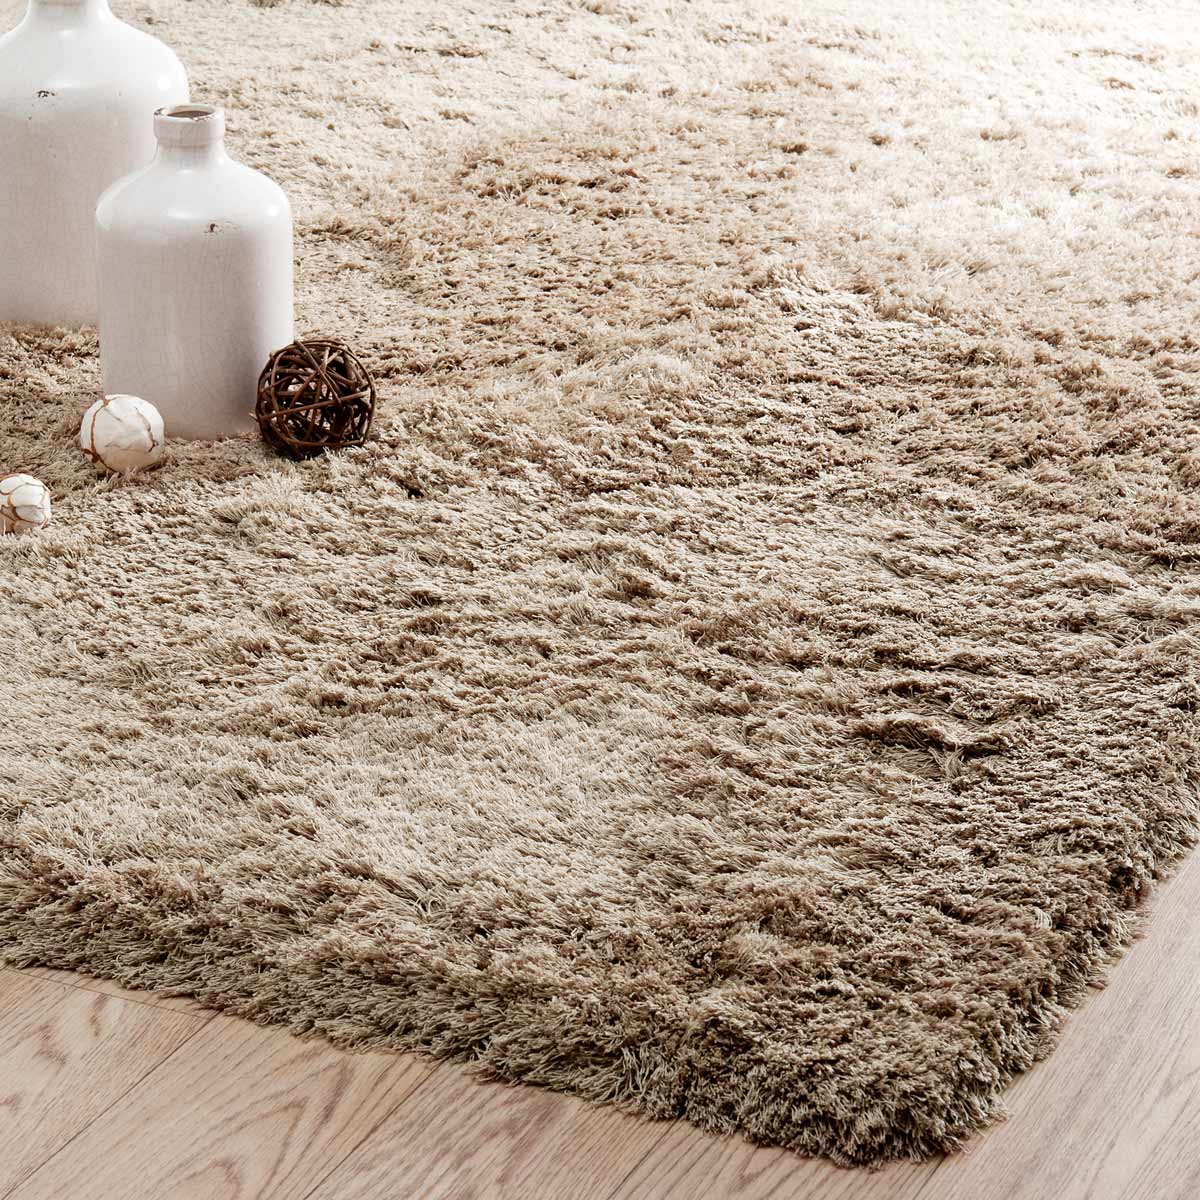 Tapis Poil Beige Idees De Decoration Interieure French Decor